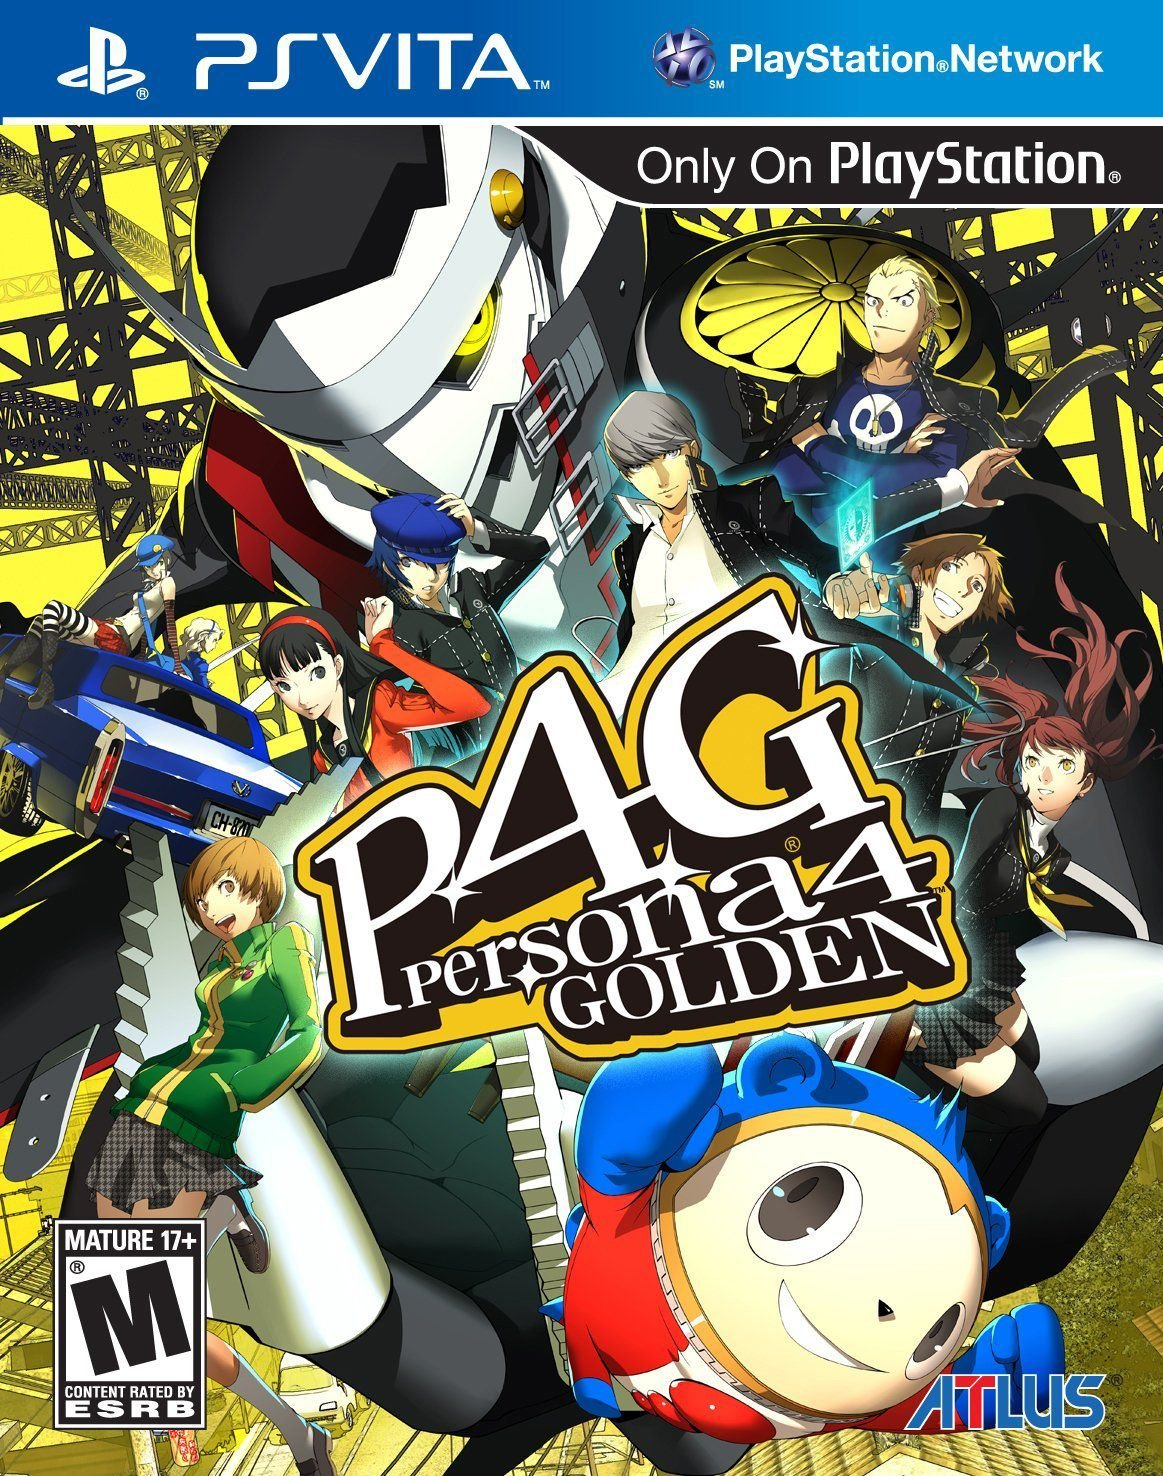 Publicity still for Persona 4 Golden